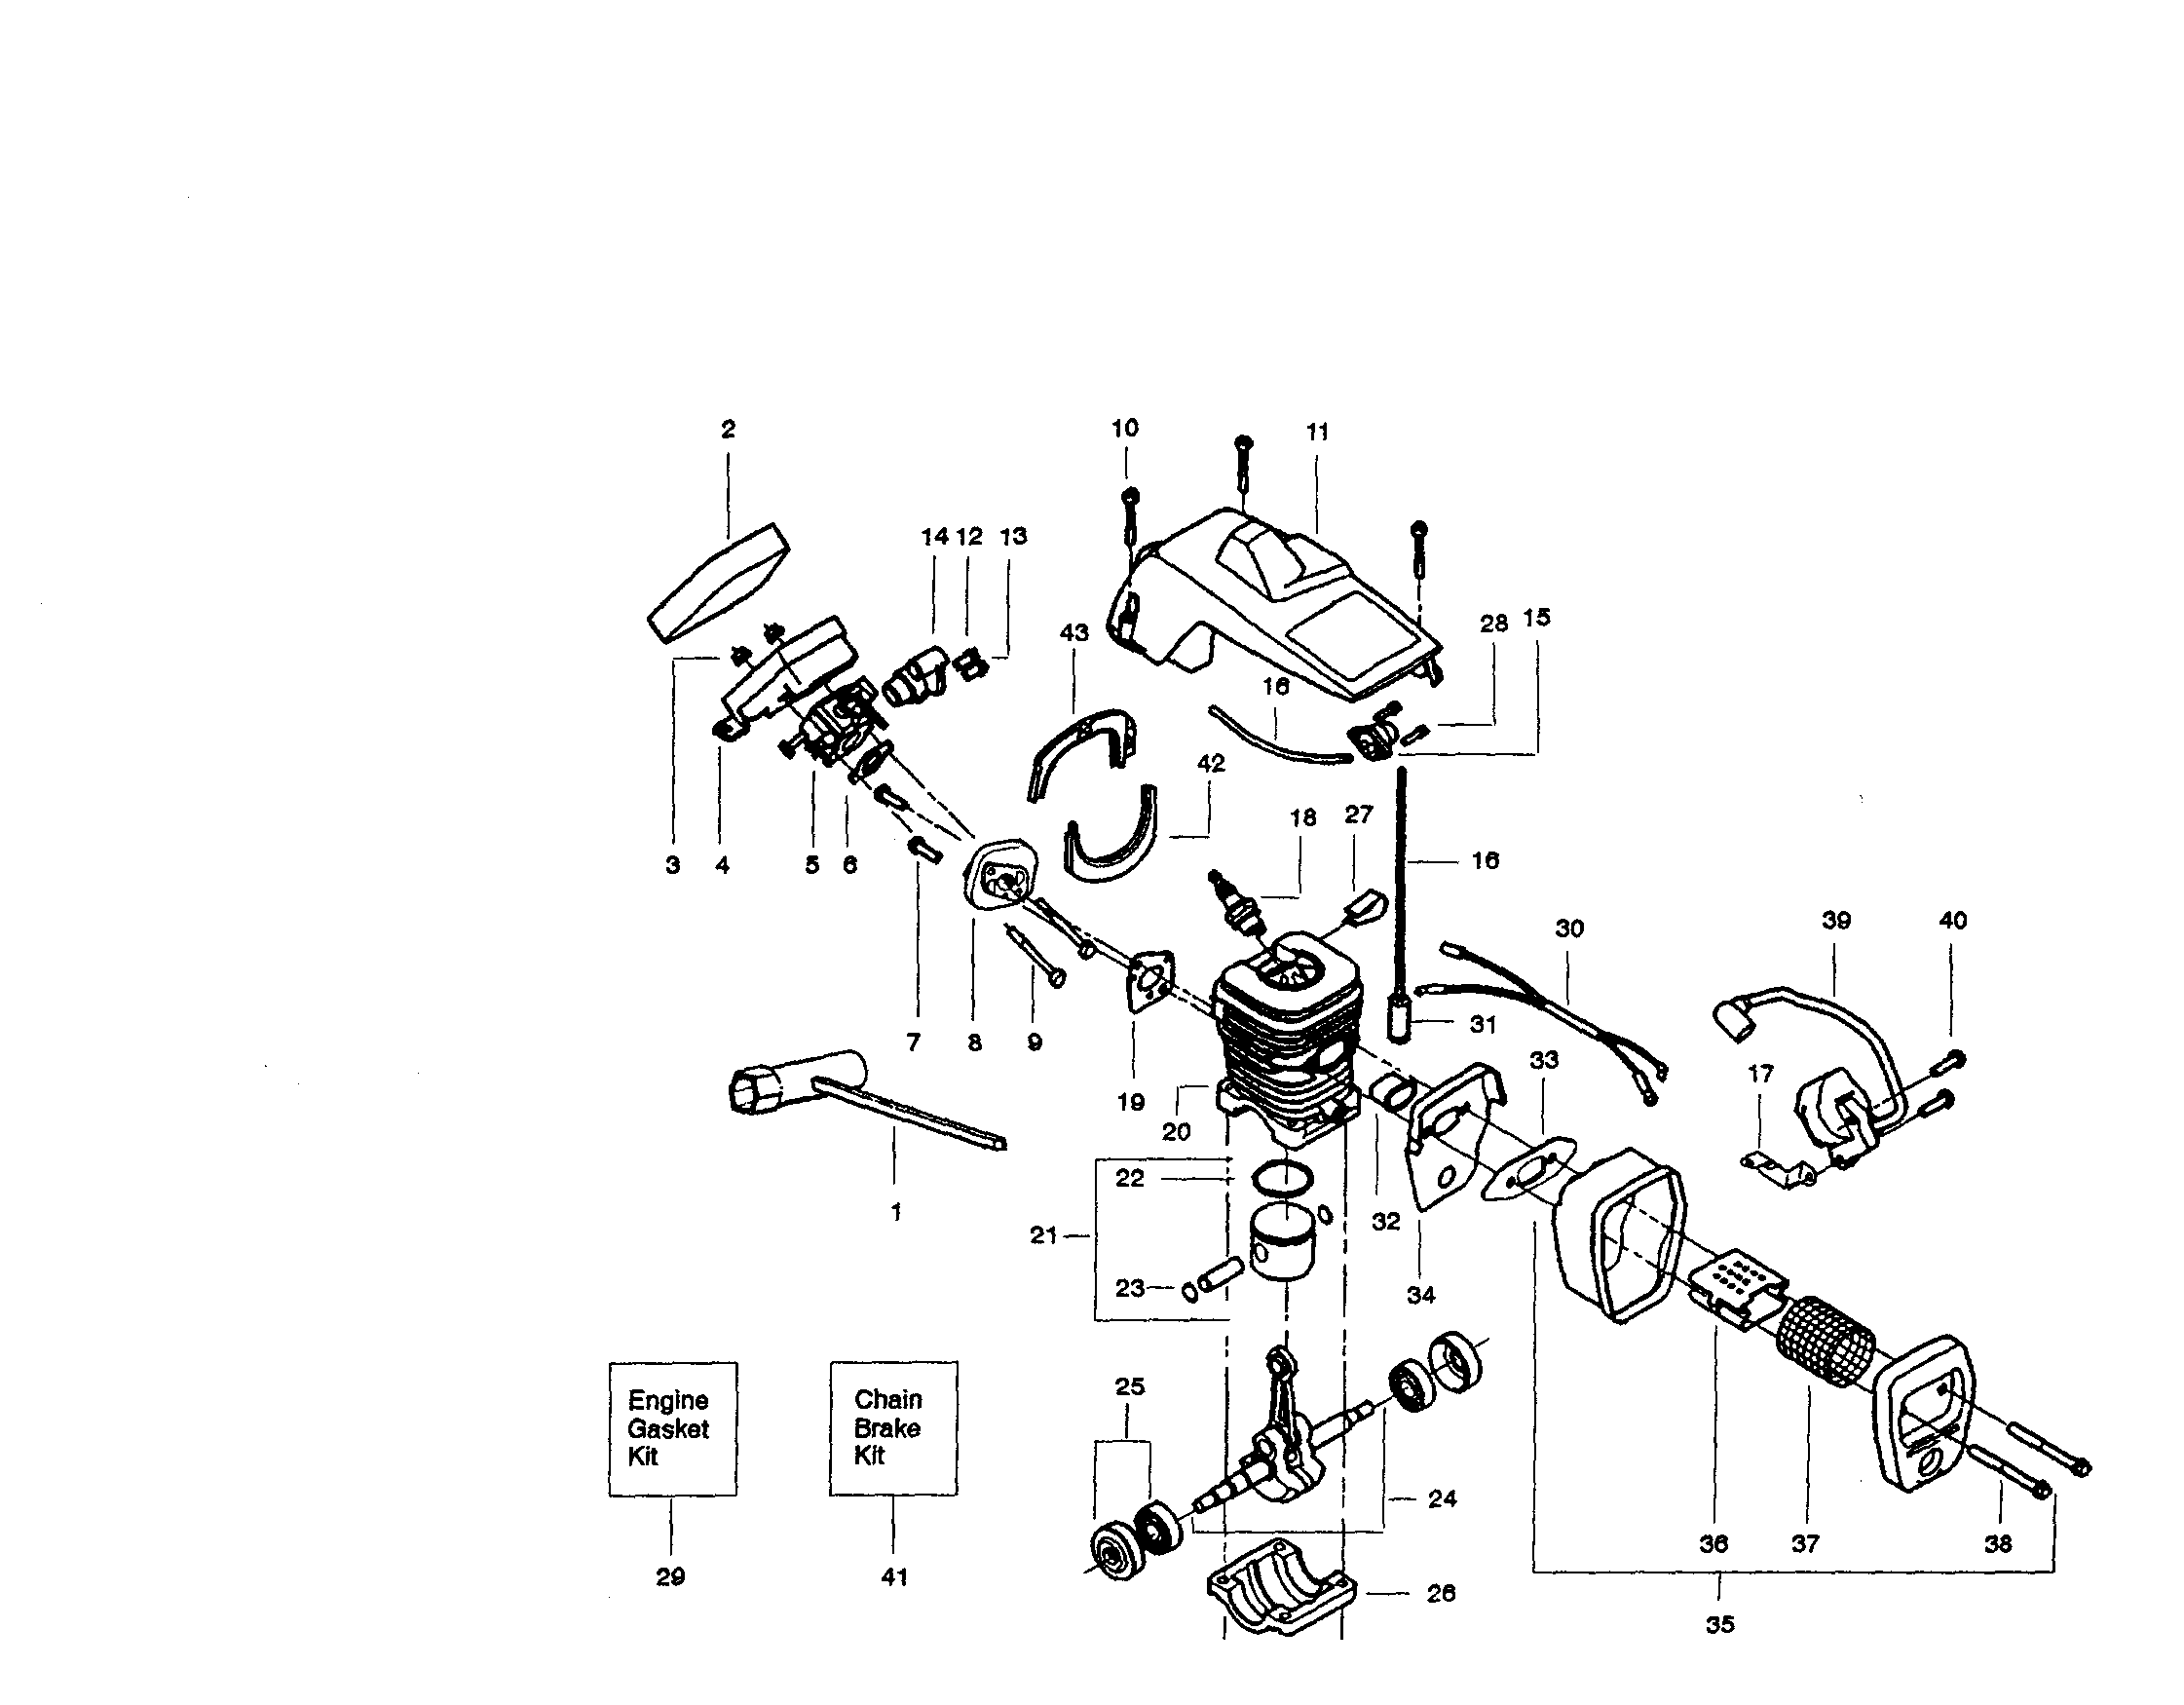 [WRG-7916] Craftsman 42cc Chainsaw Carburetor Engine Diagram